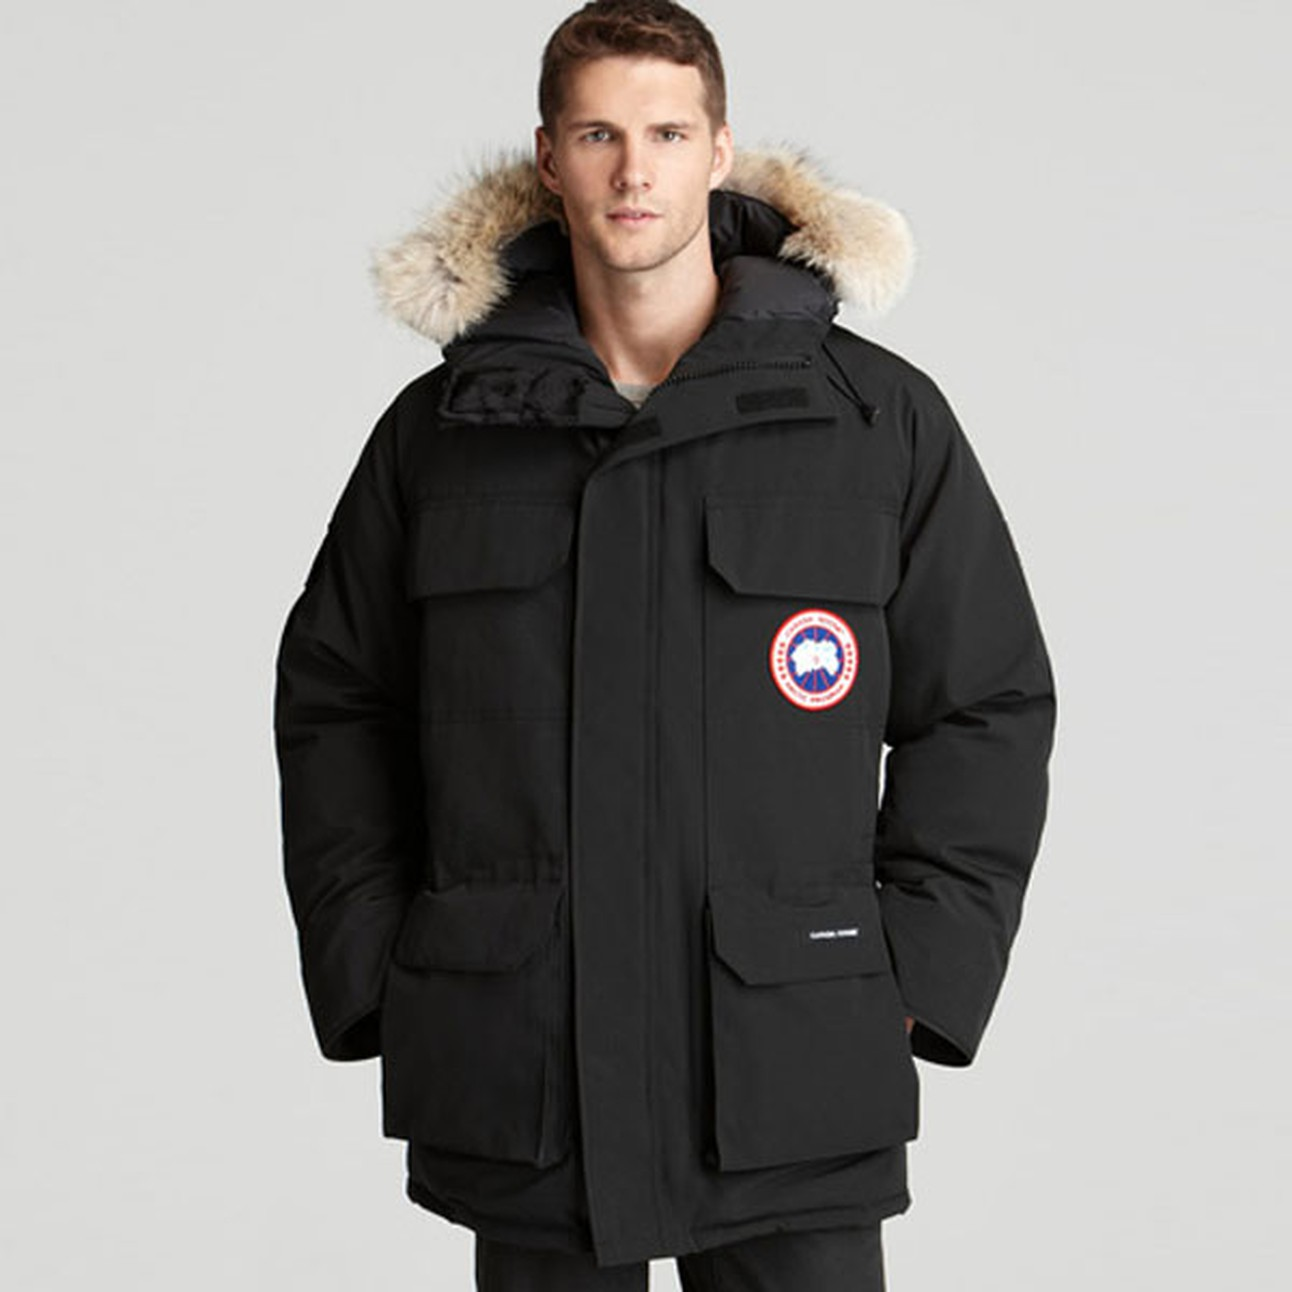 canada goose expedition parka black men's jacket